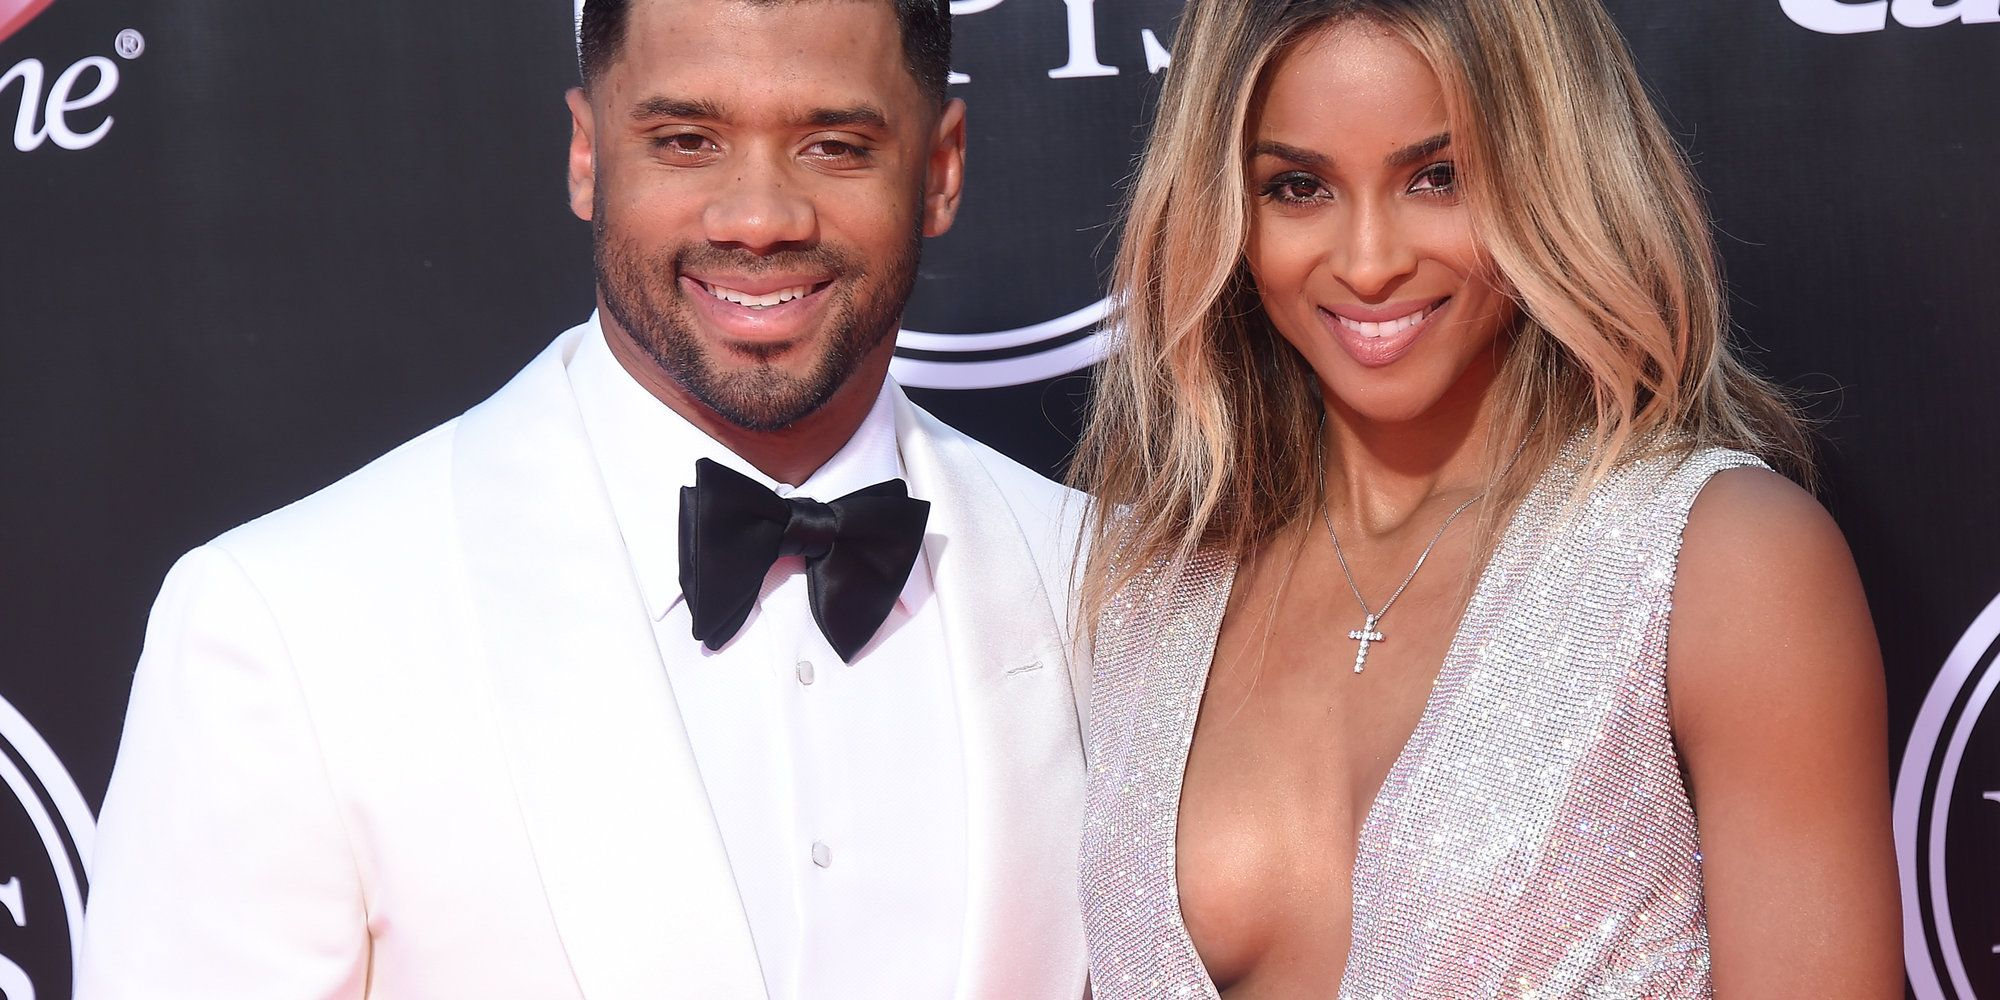 Ciara shares what that unosexu policy with russell wilson was like